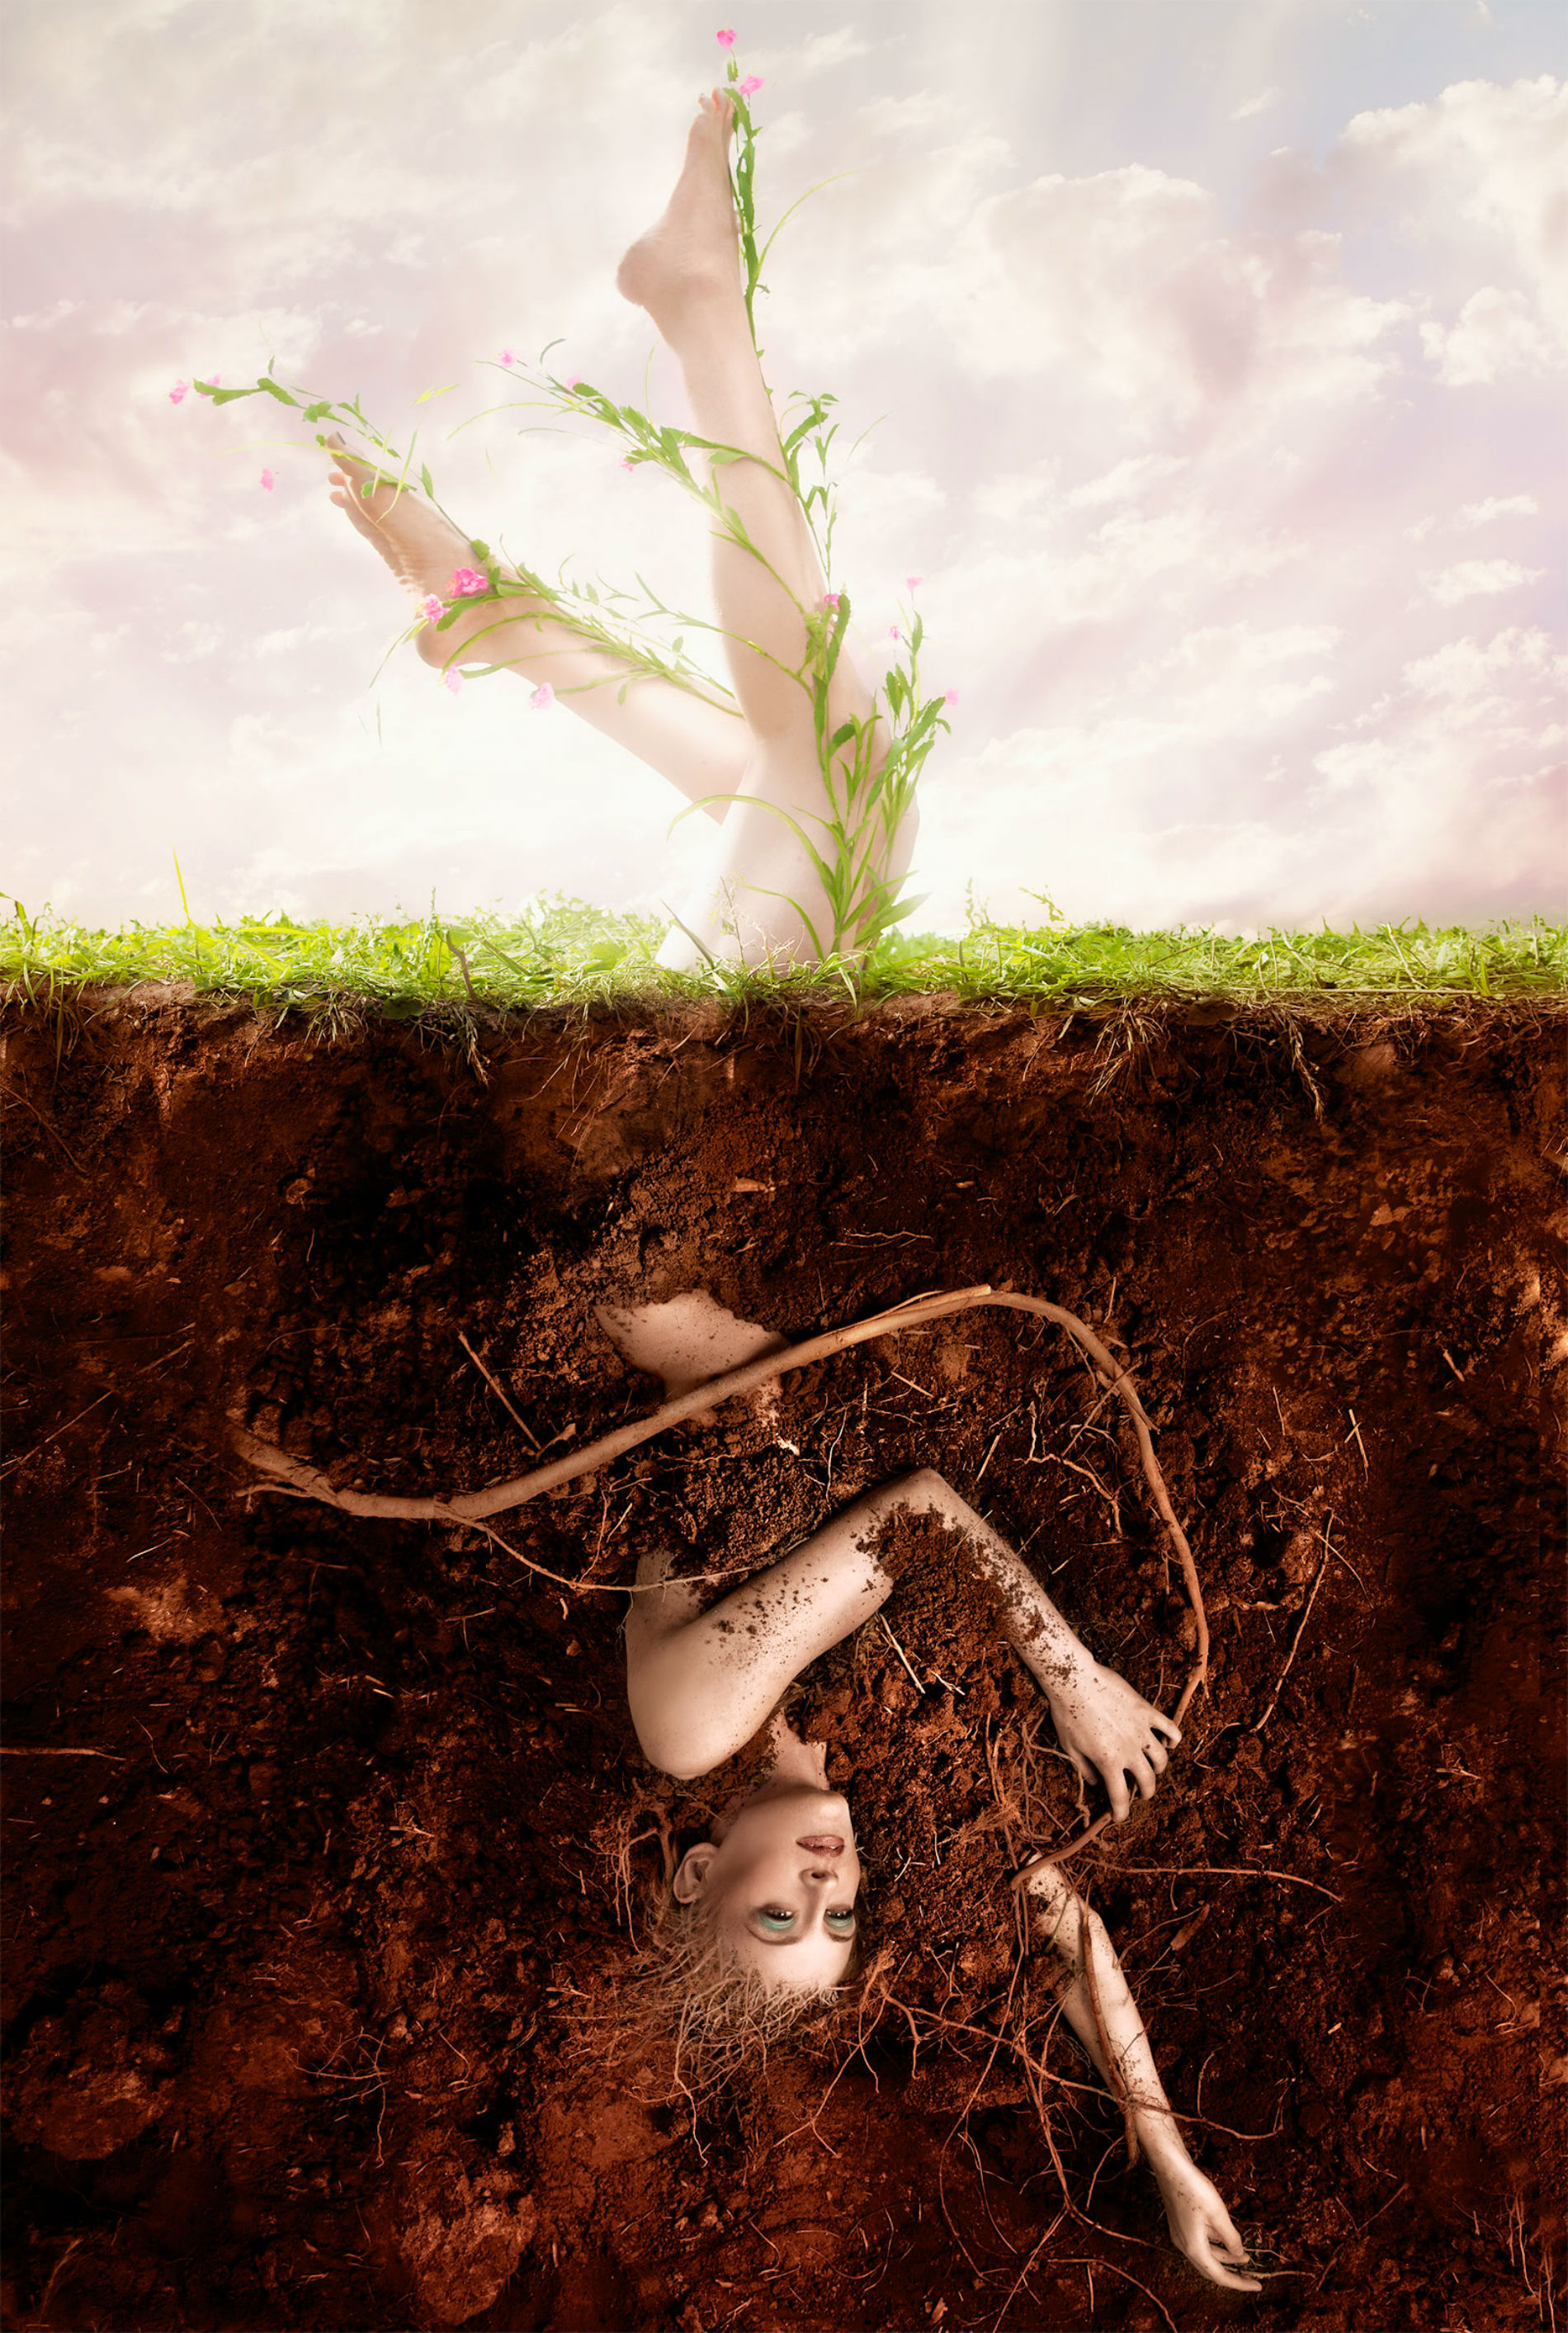 Grow Your Own Model: Photography by Aaron Nace